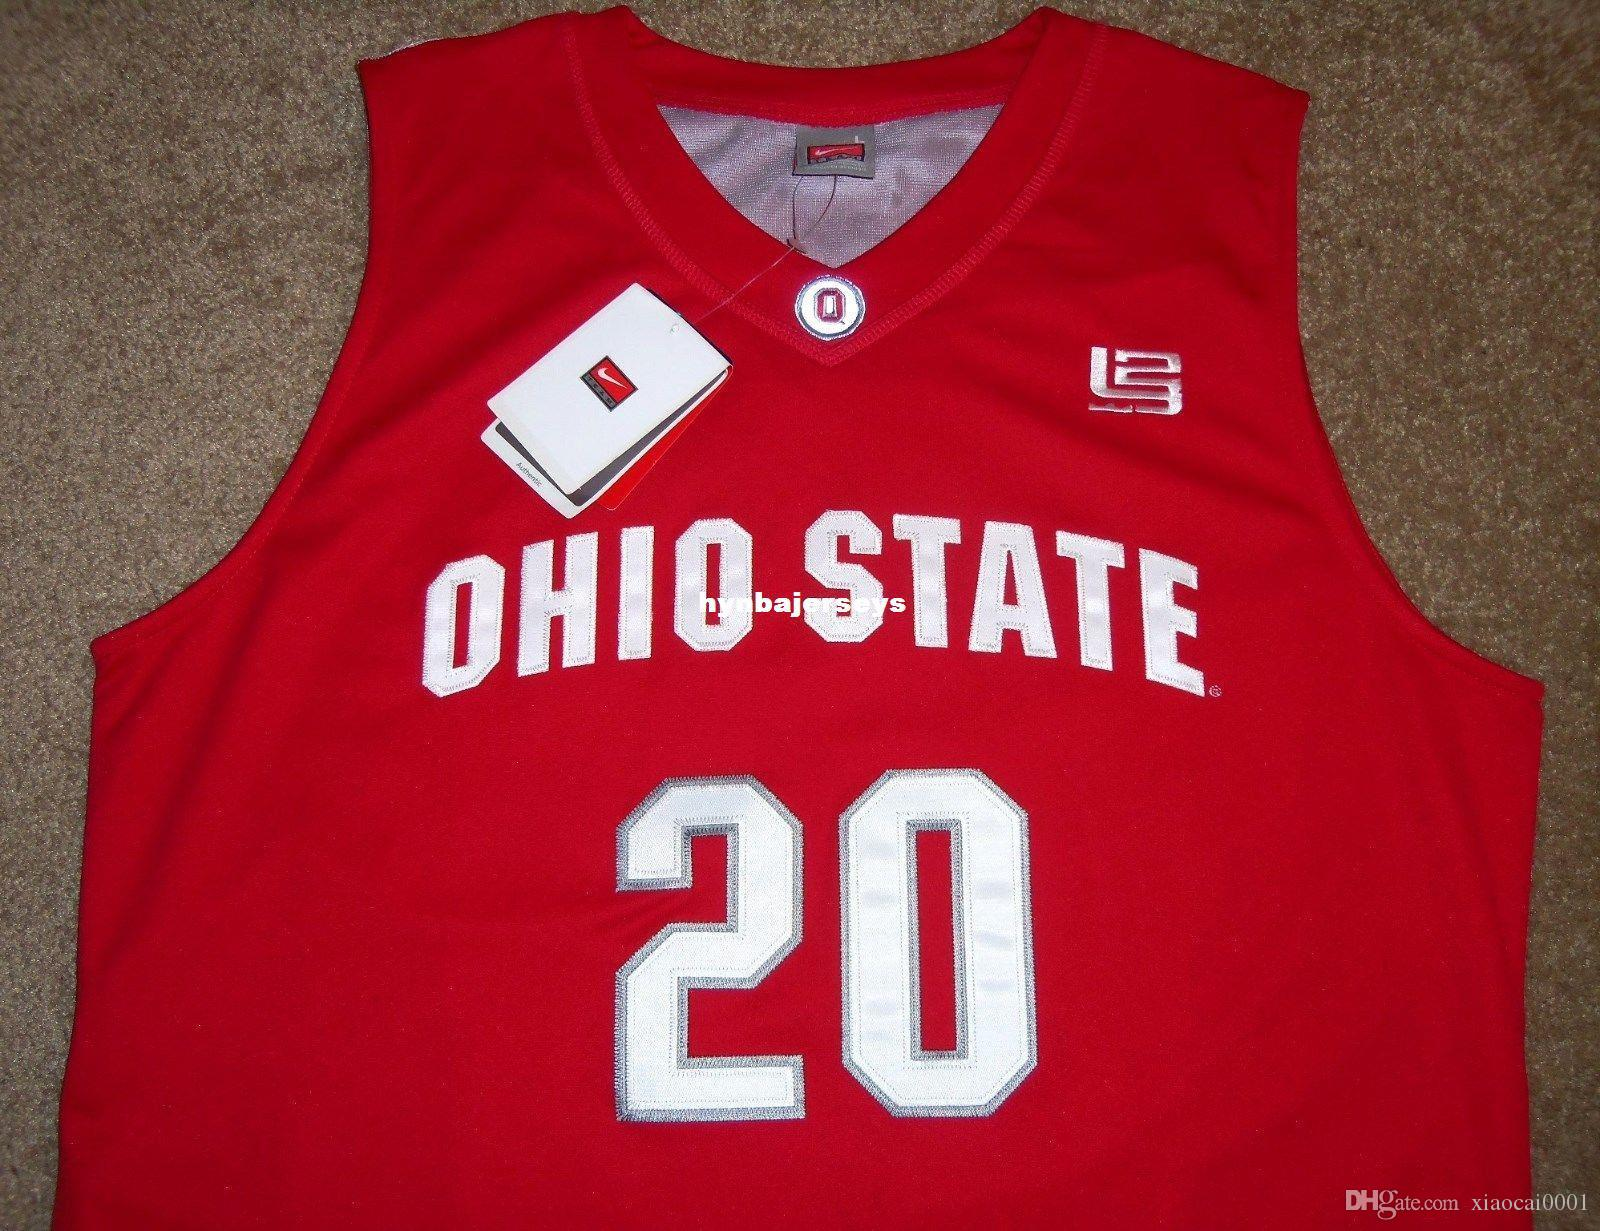 reputable site 521c4 8ae75 NEW #20 GREG ODEN OHIO STATE BUCKEYES LBJ Nk ELITE JERSEY L 2 SEWN (NWT)  Mens Vest Top Size XS-6XL Stitched basketball Jerseys